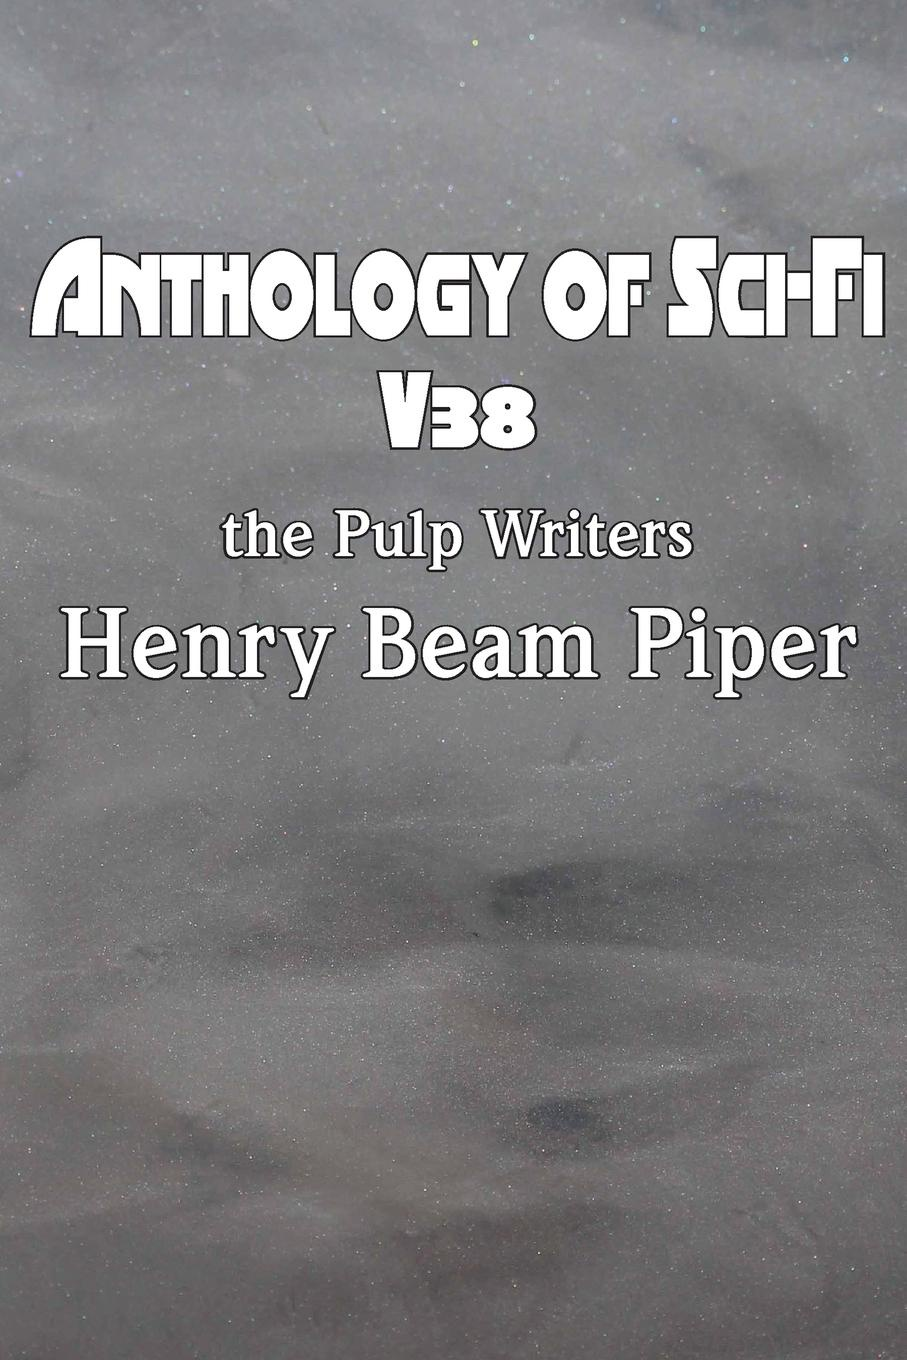 Henry Beam Piper Anthology of Sci-Fi V38, the Pulp Writers - Henry Beam Piper stories from the world of tomorrow